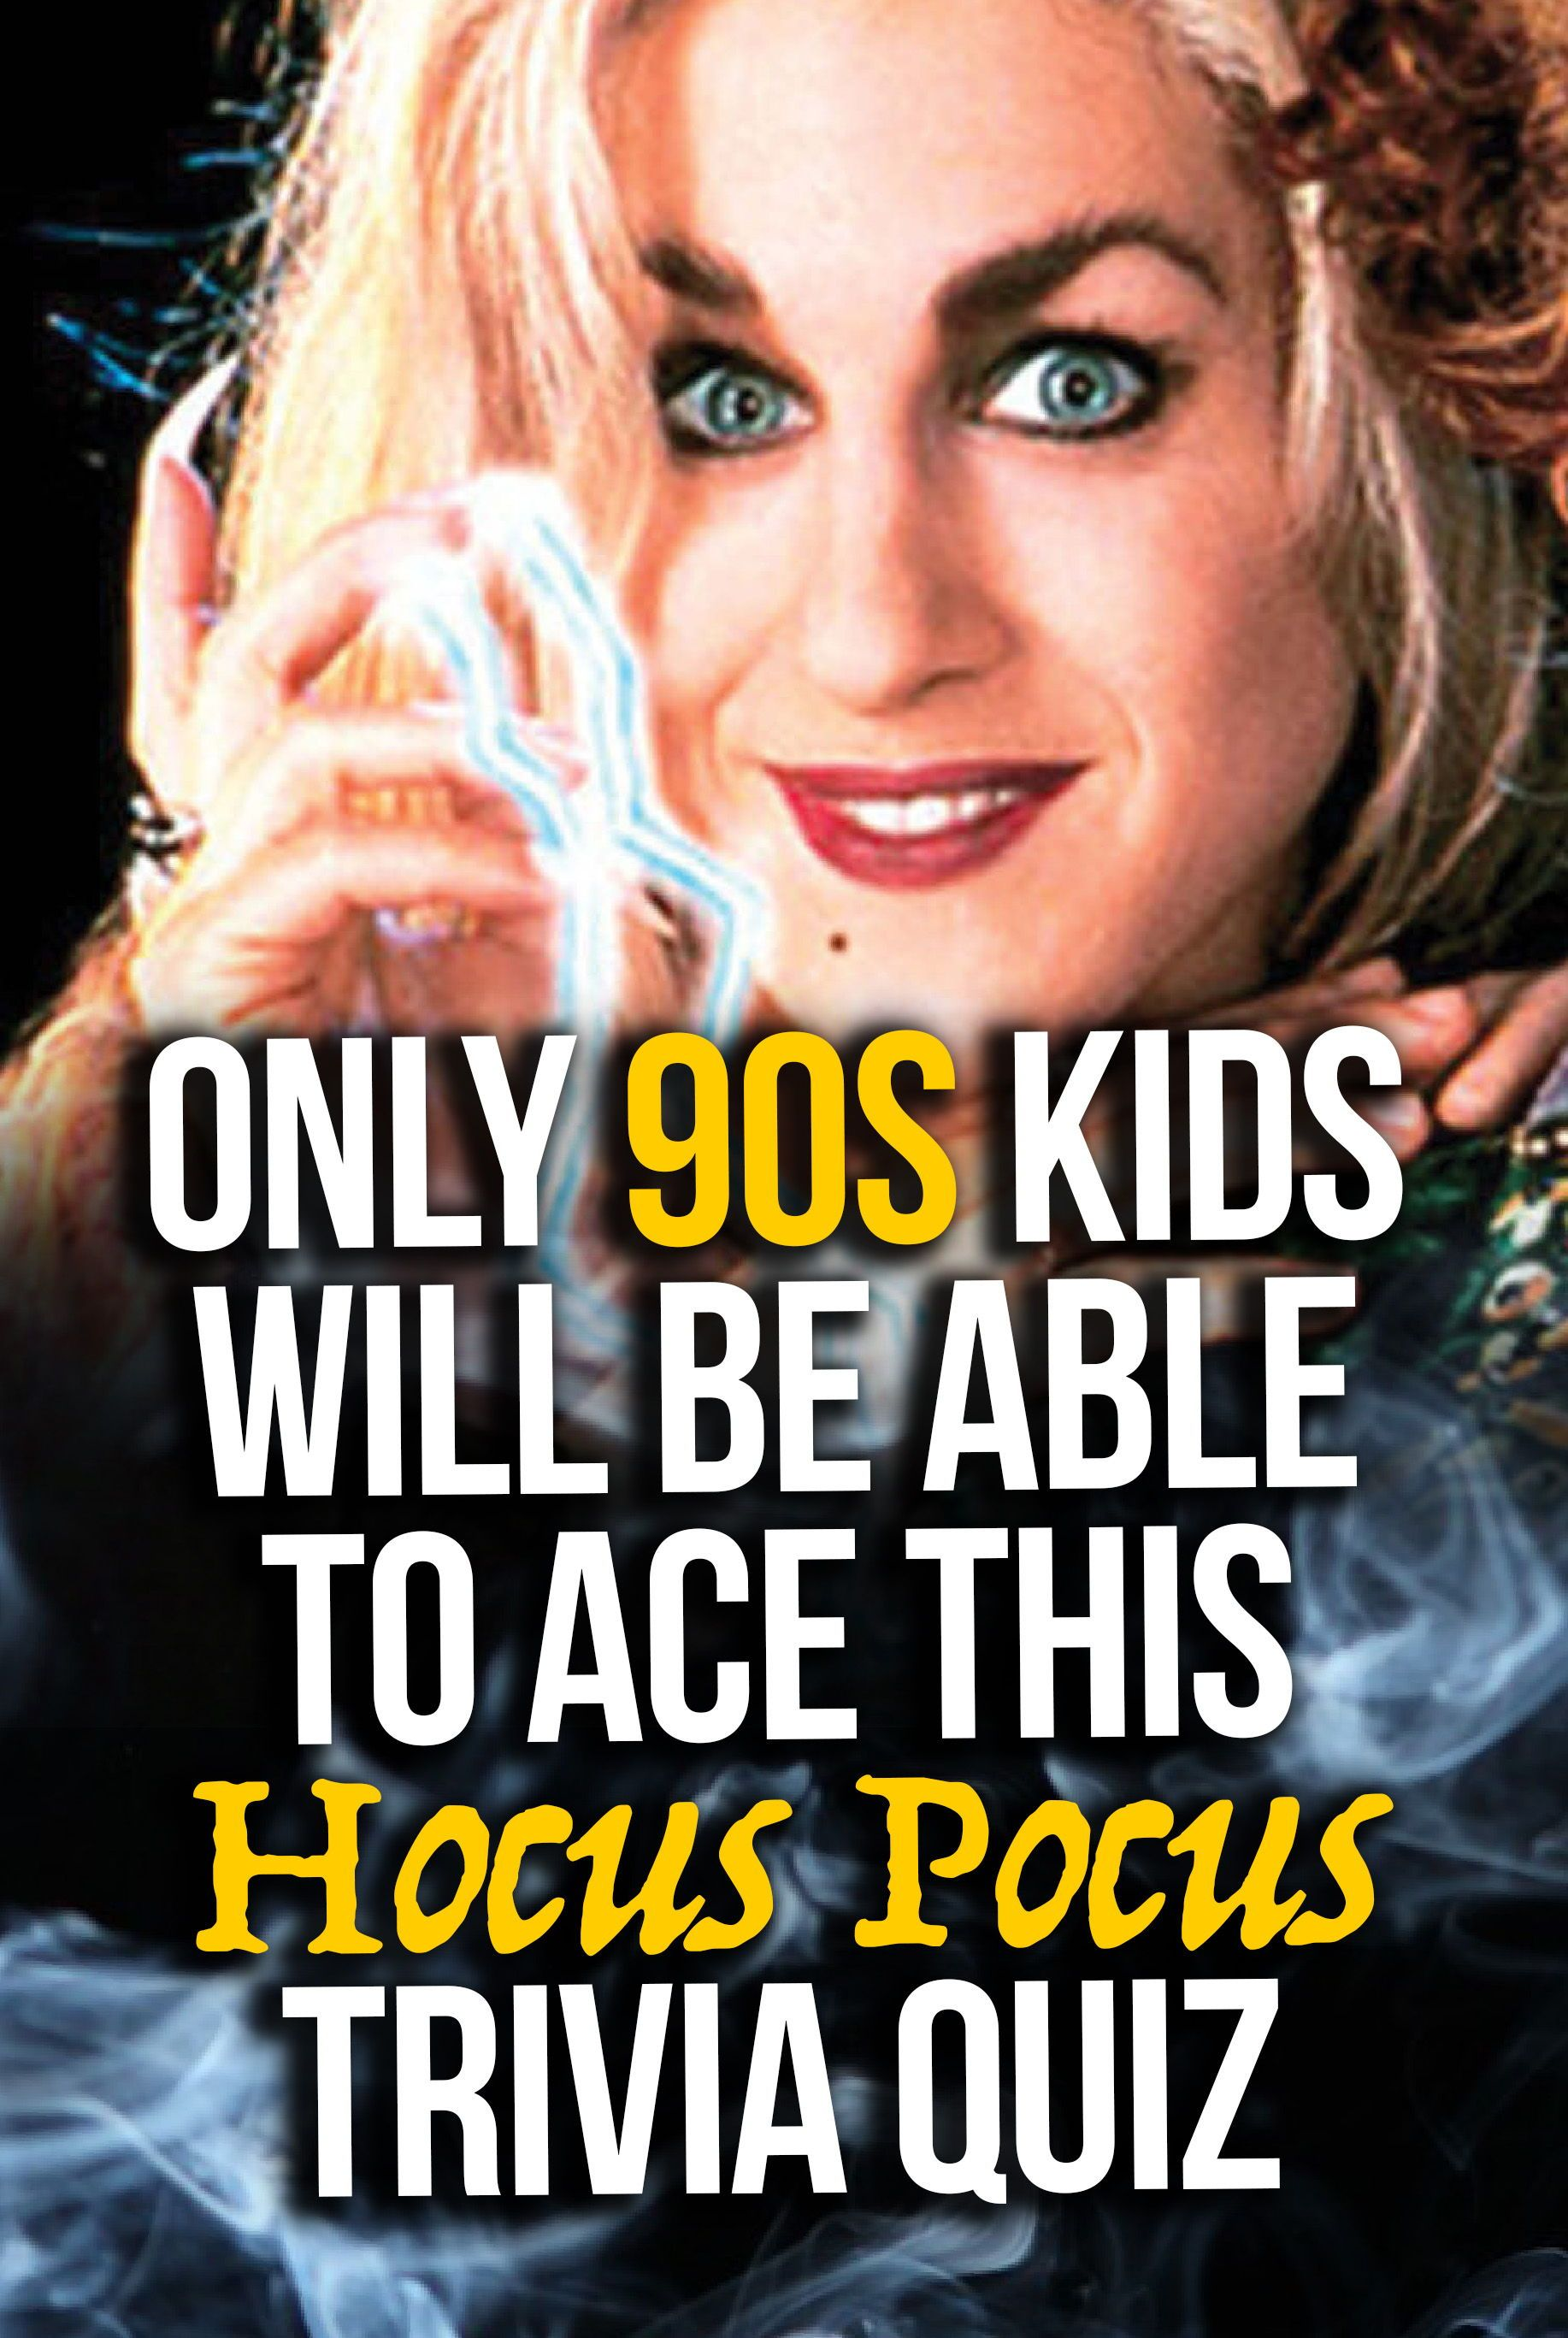 Quiz Only 90s Kids Will Be Able To Ace This Hocus Pocus Trivia Quiz Halloween Quiz Hocus Pocus Trivia Quiz